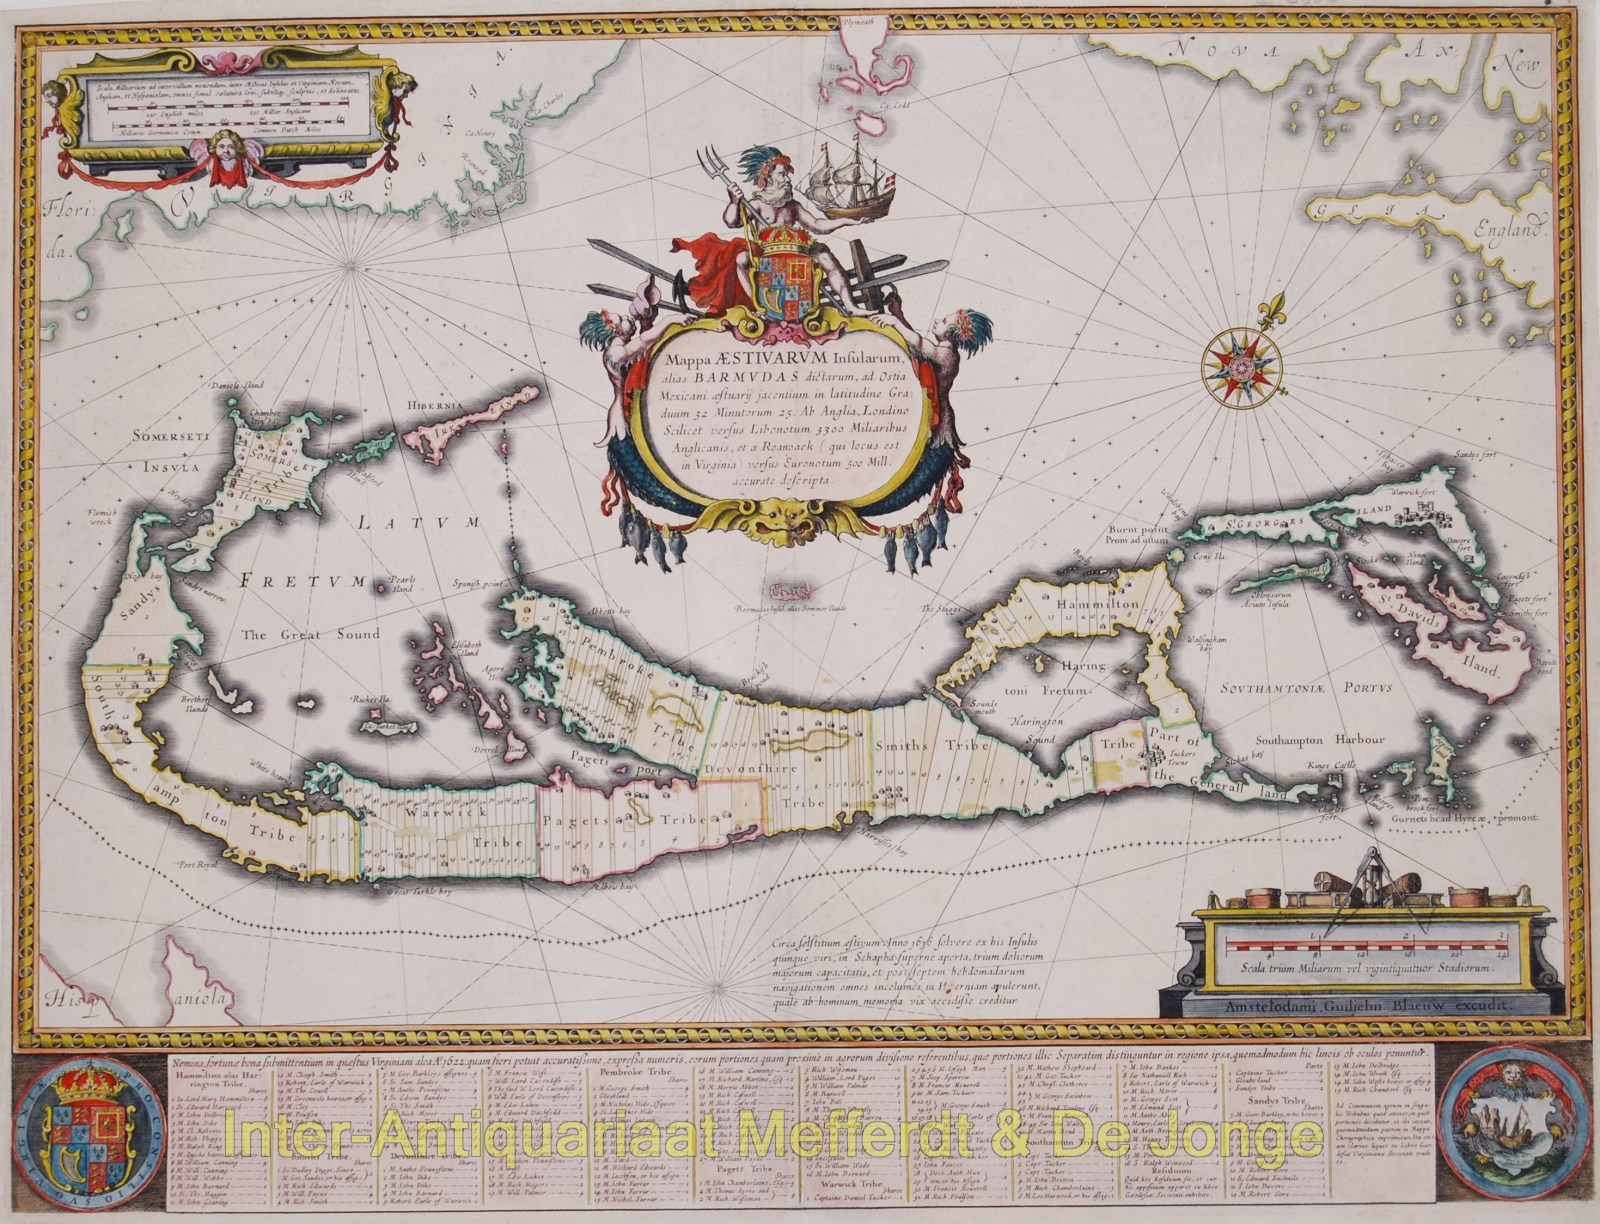 Bermuda map - Blaeu - Inter-Antiquariaat Mefferdt & De Jonge